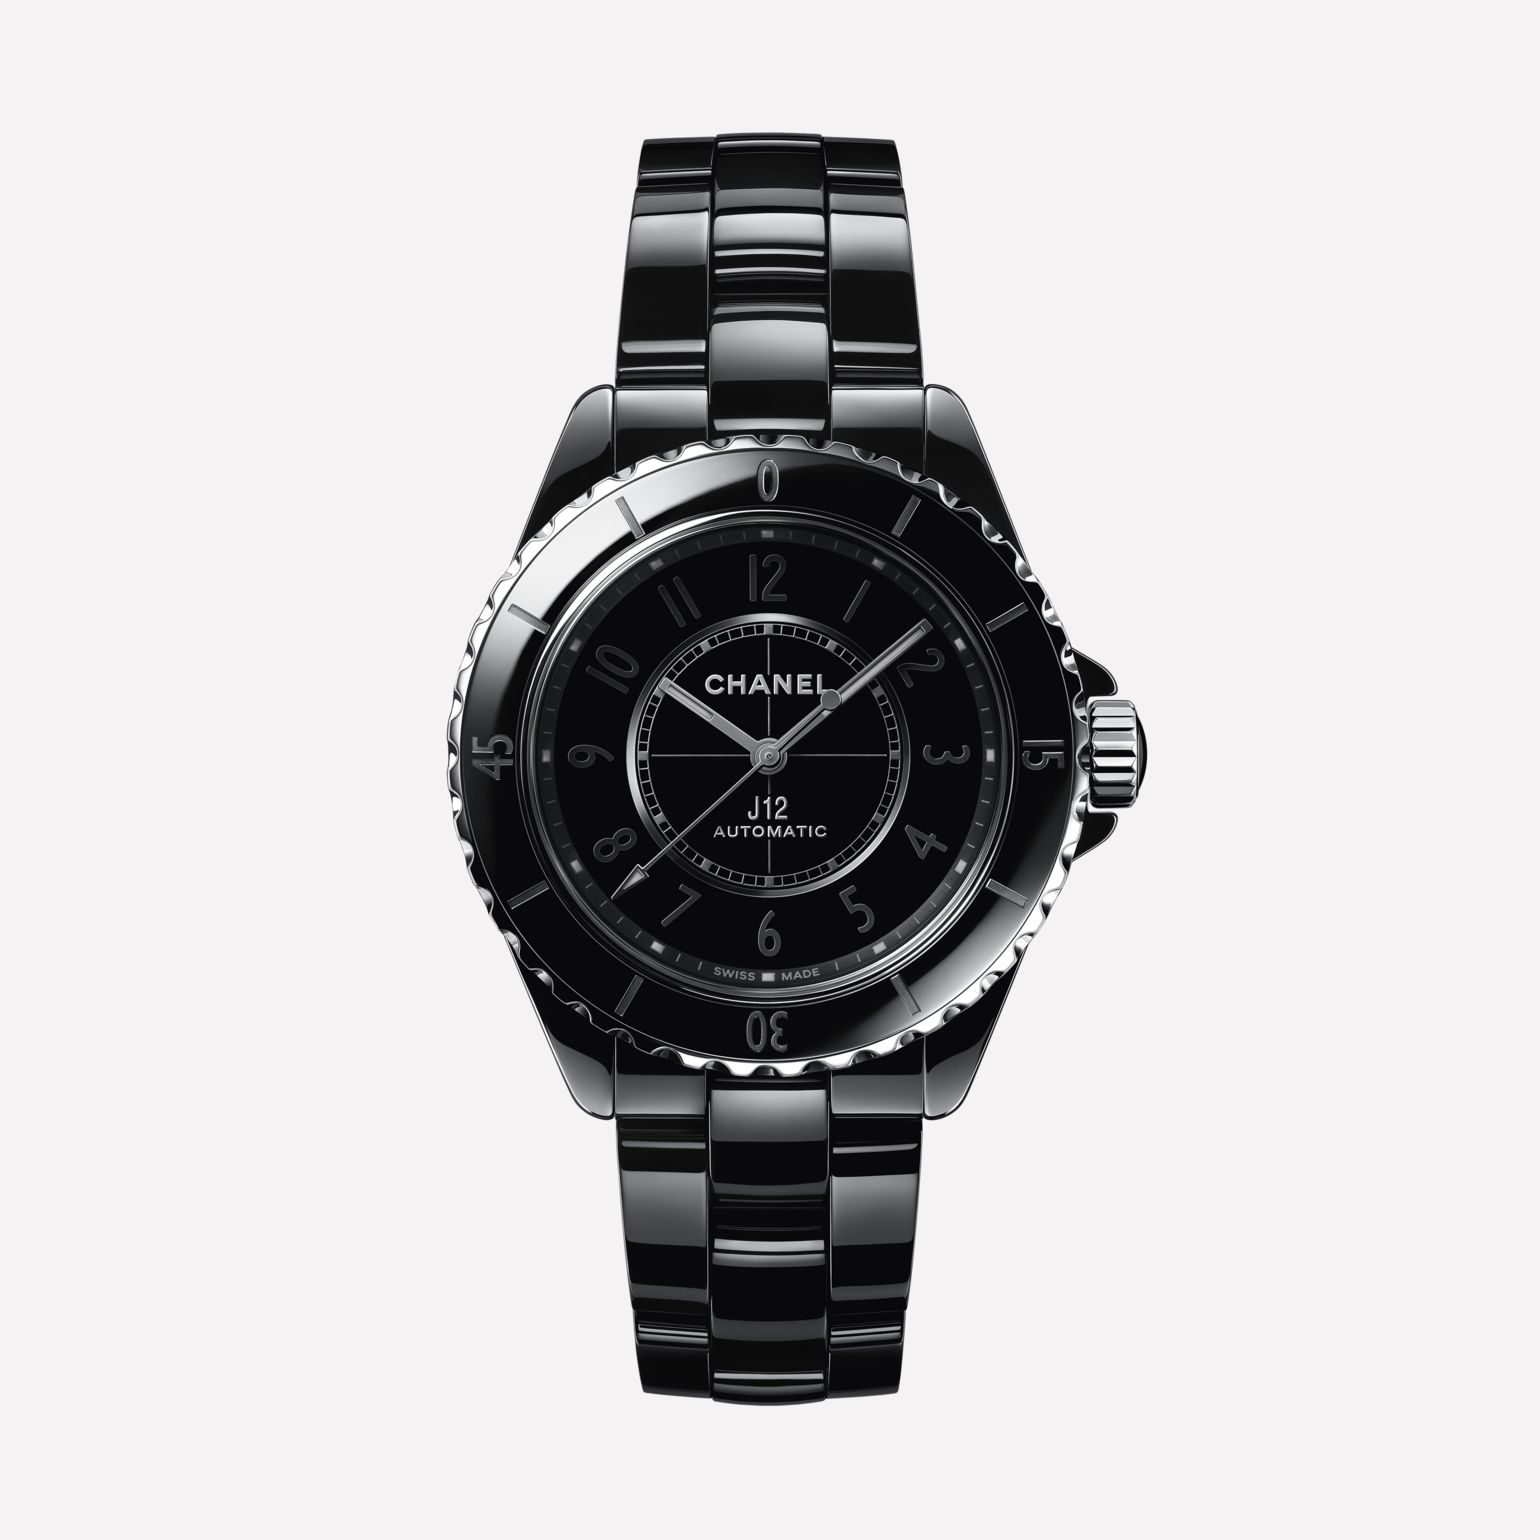 J12 Phantom Watch Caliber 12.1, 38 mm Black highly resistant ceramic and steel